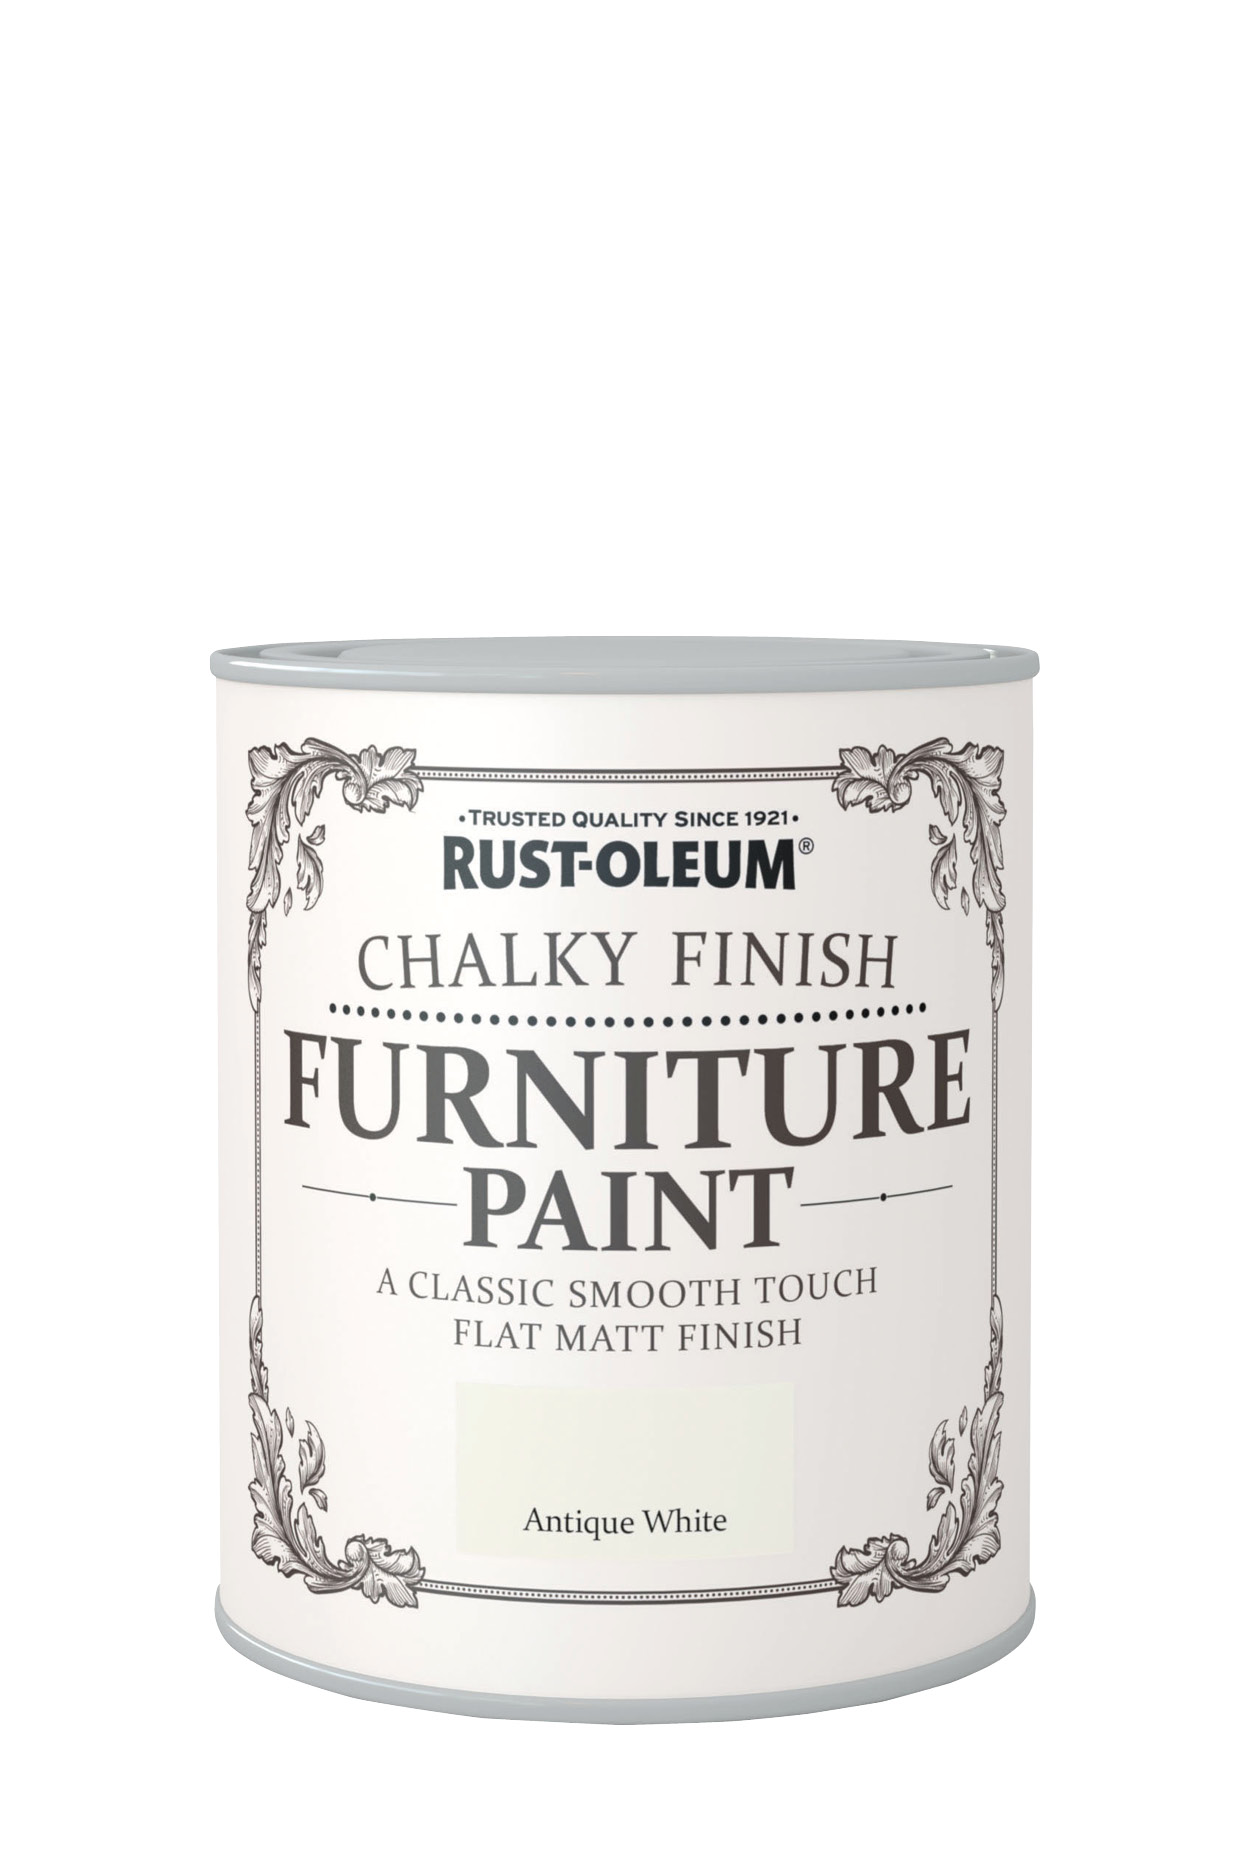 Chalky Finish Furniture Paint 750ml